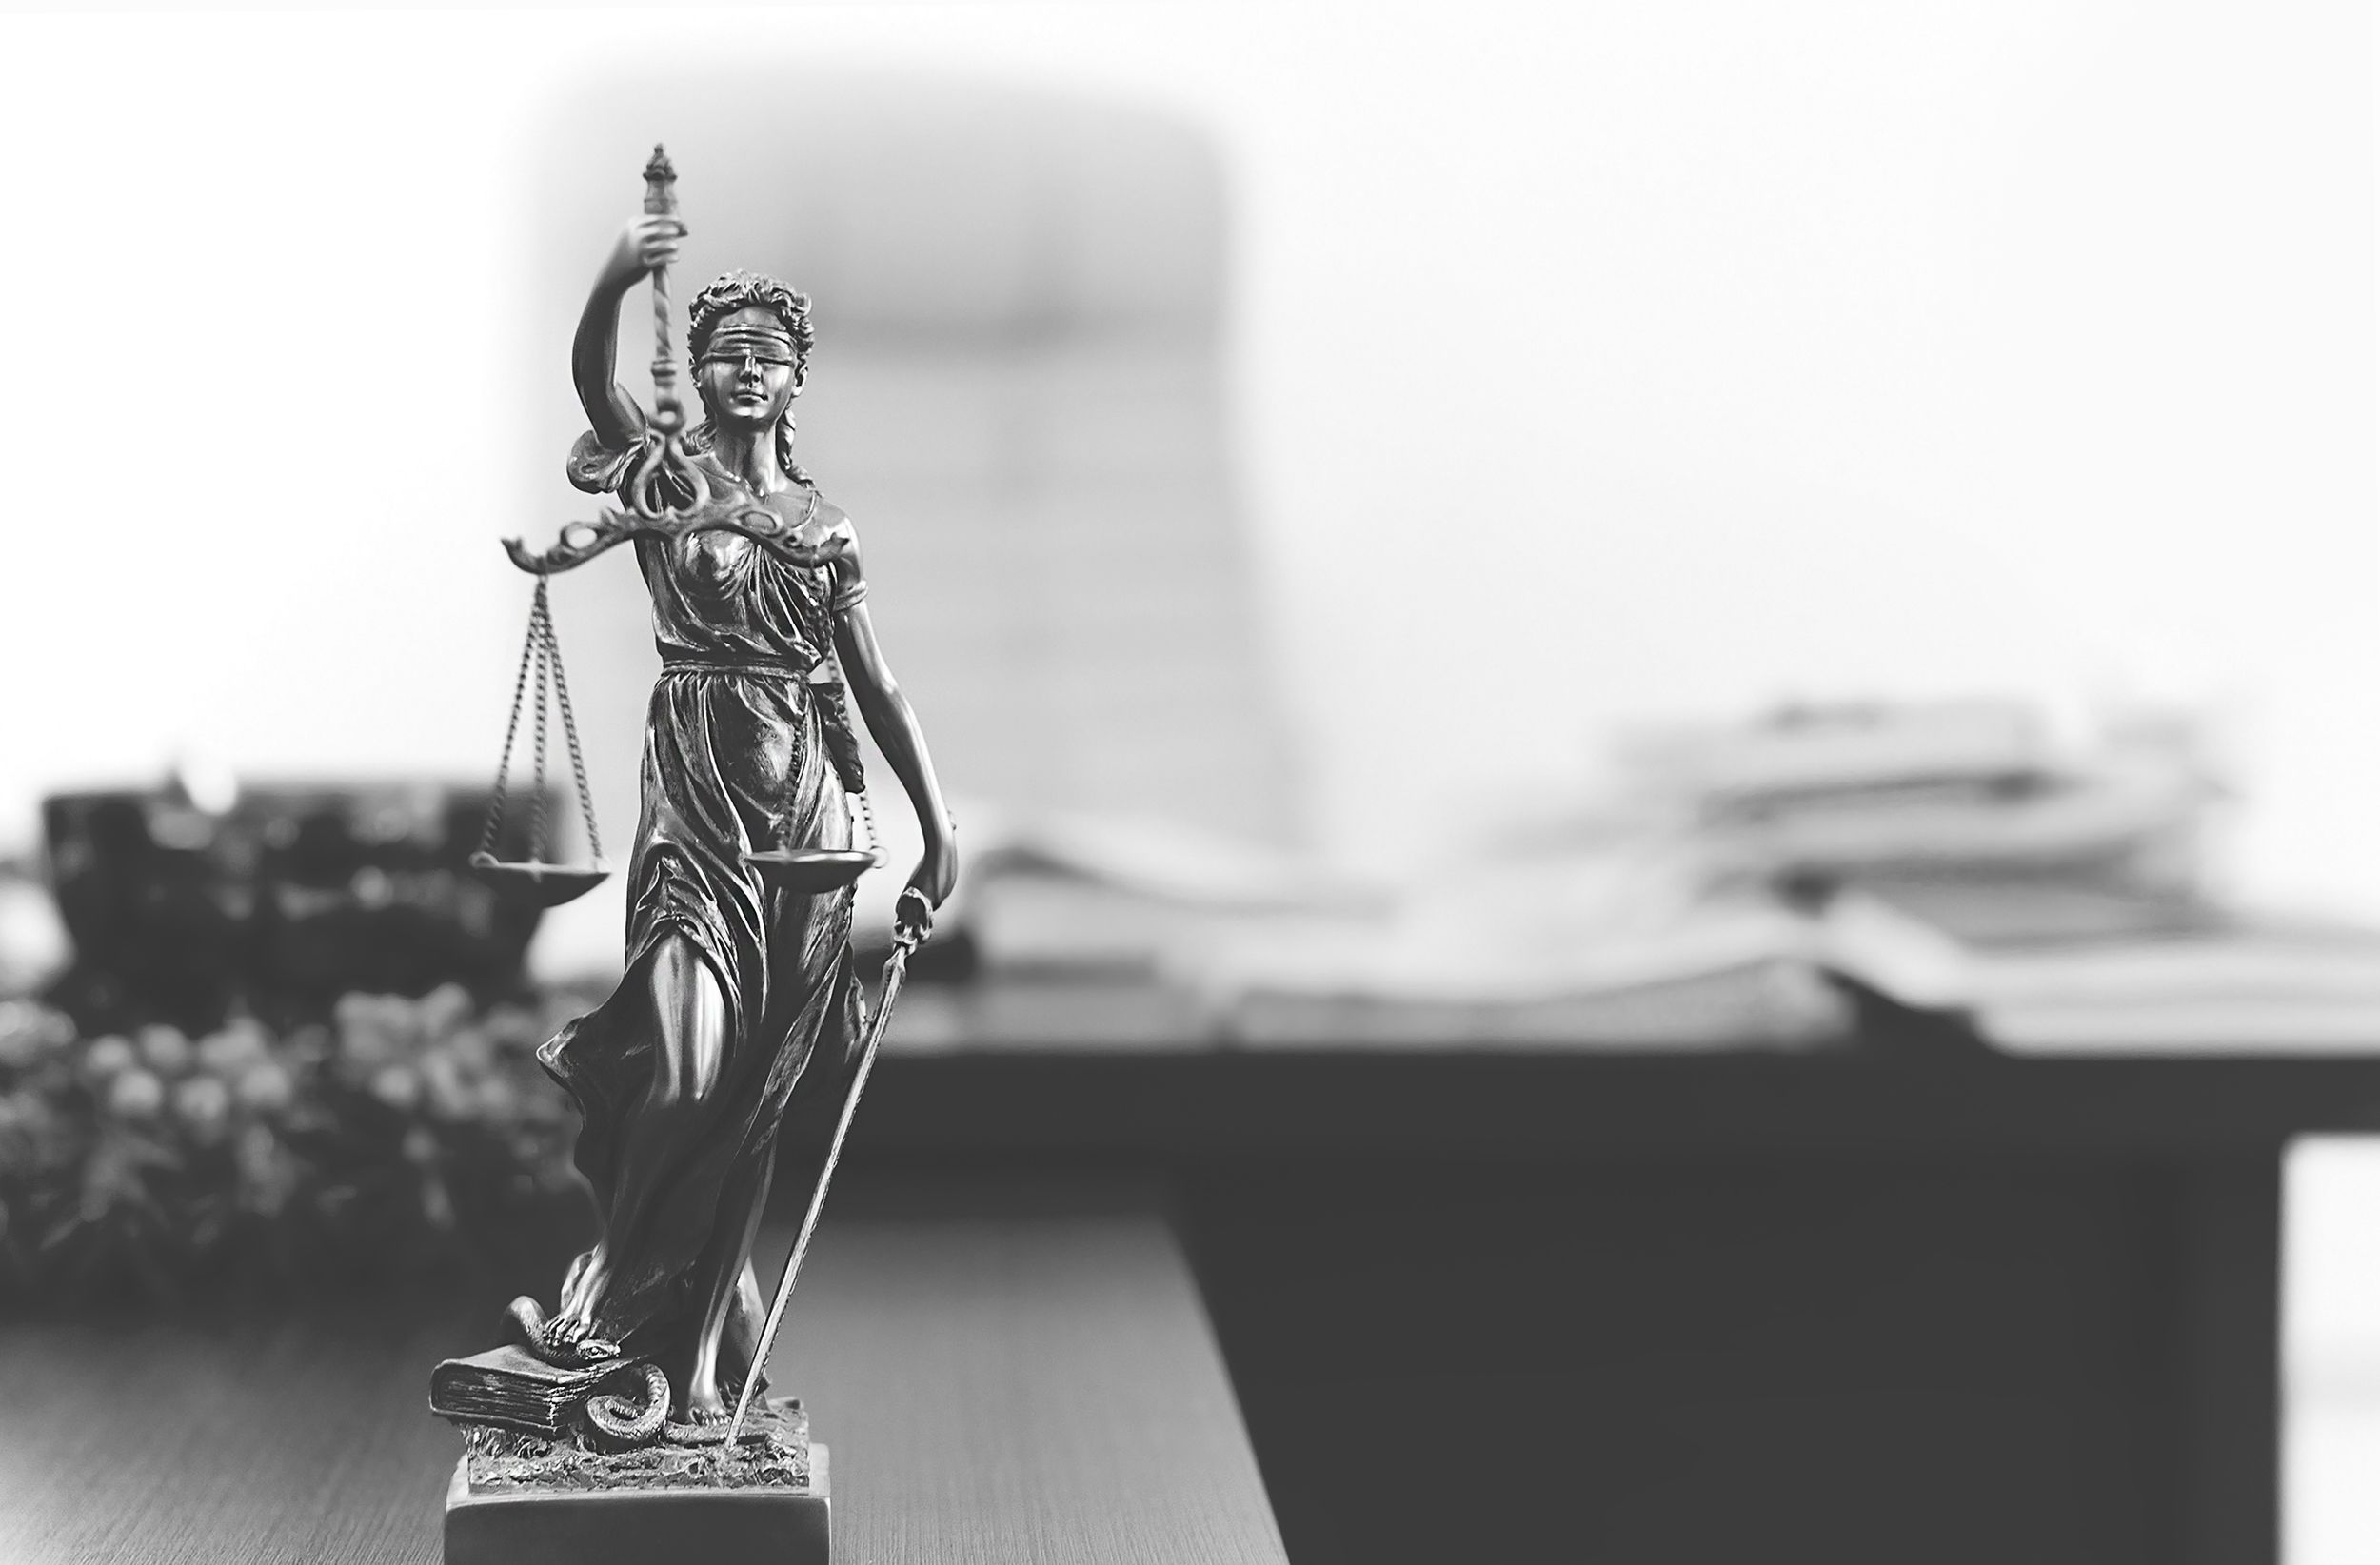 A statue of lady justice on a lawyer's desk